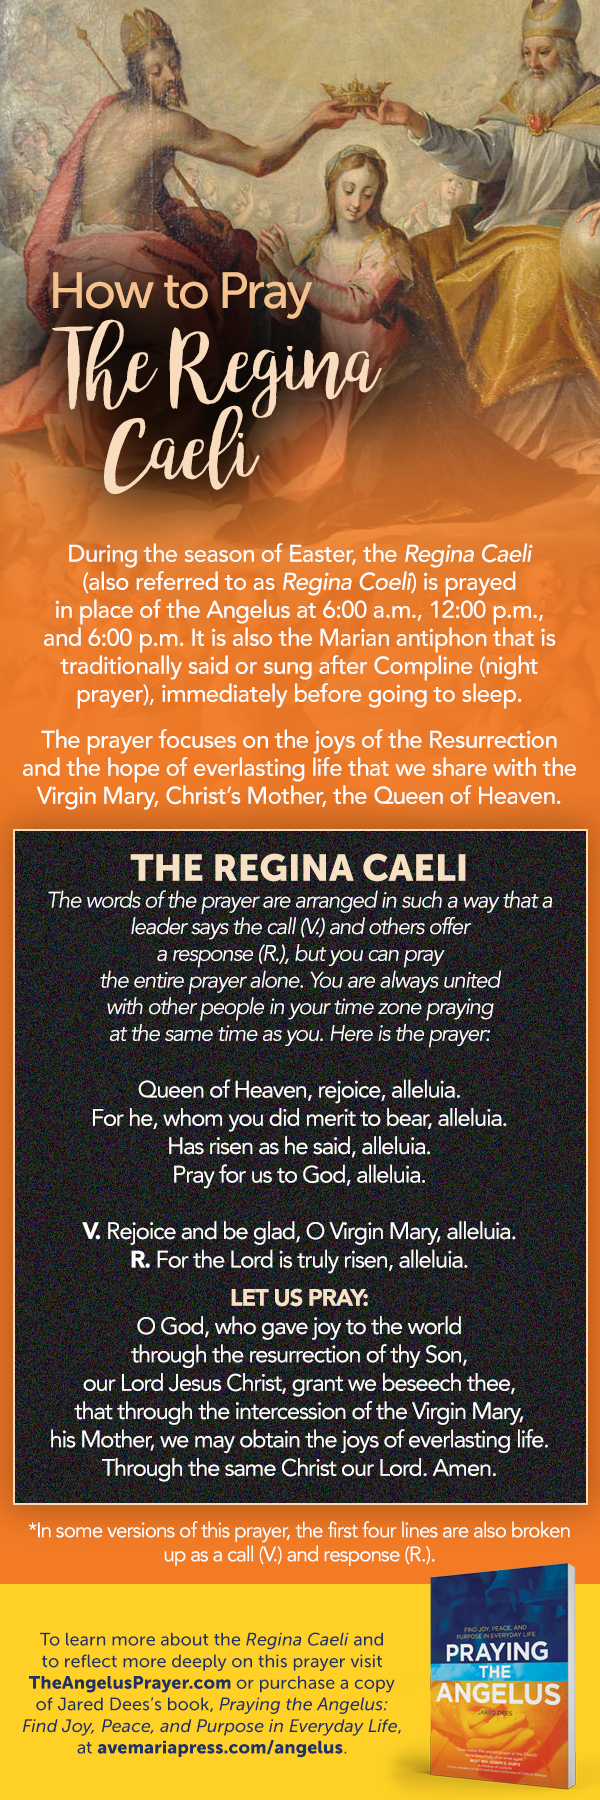 How to Pray the Regina Caeli